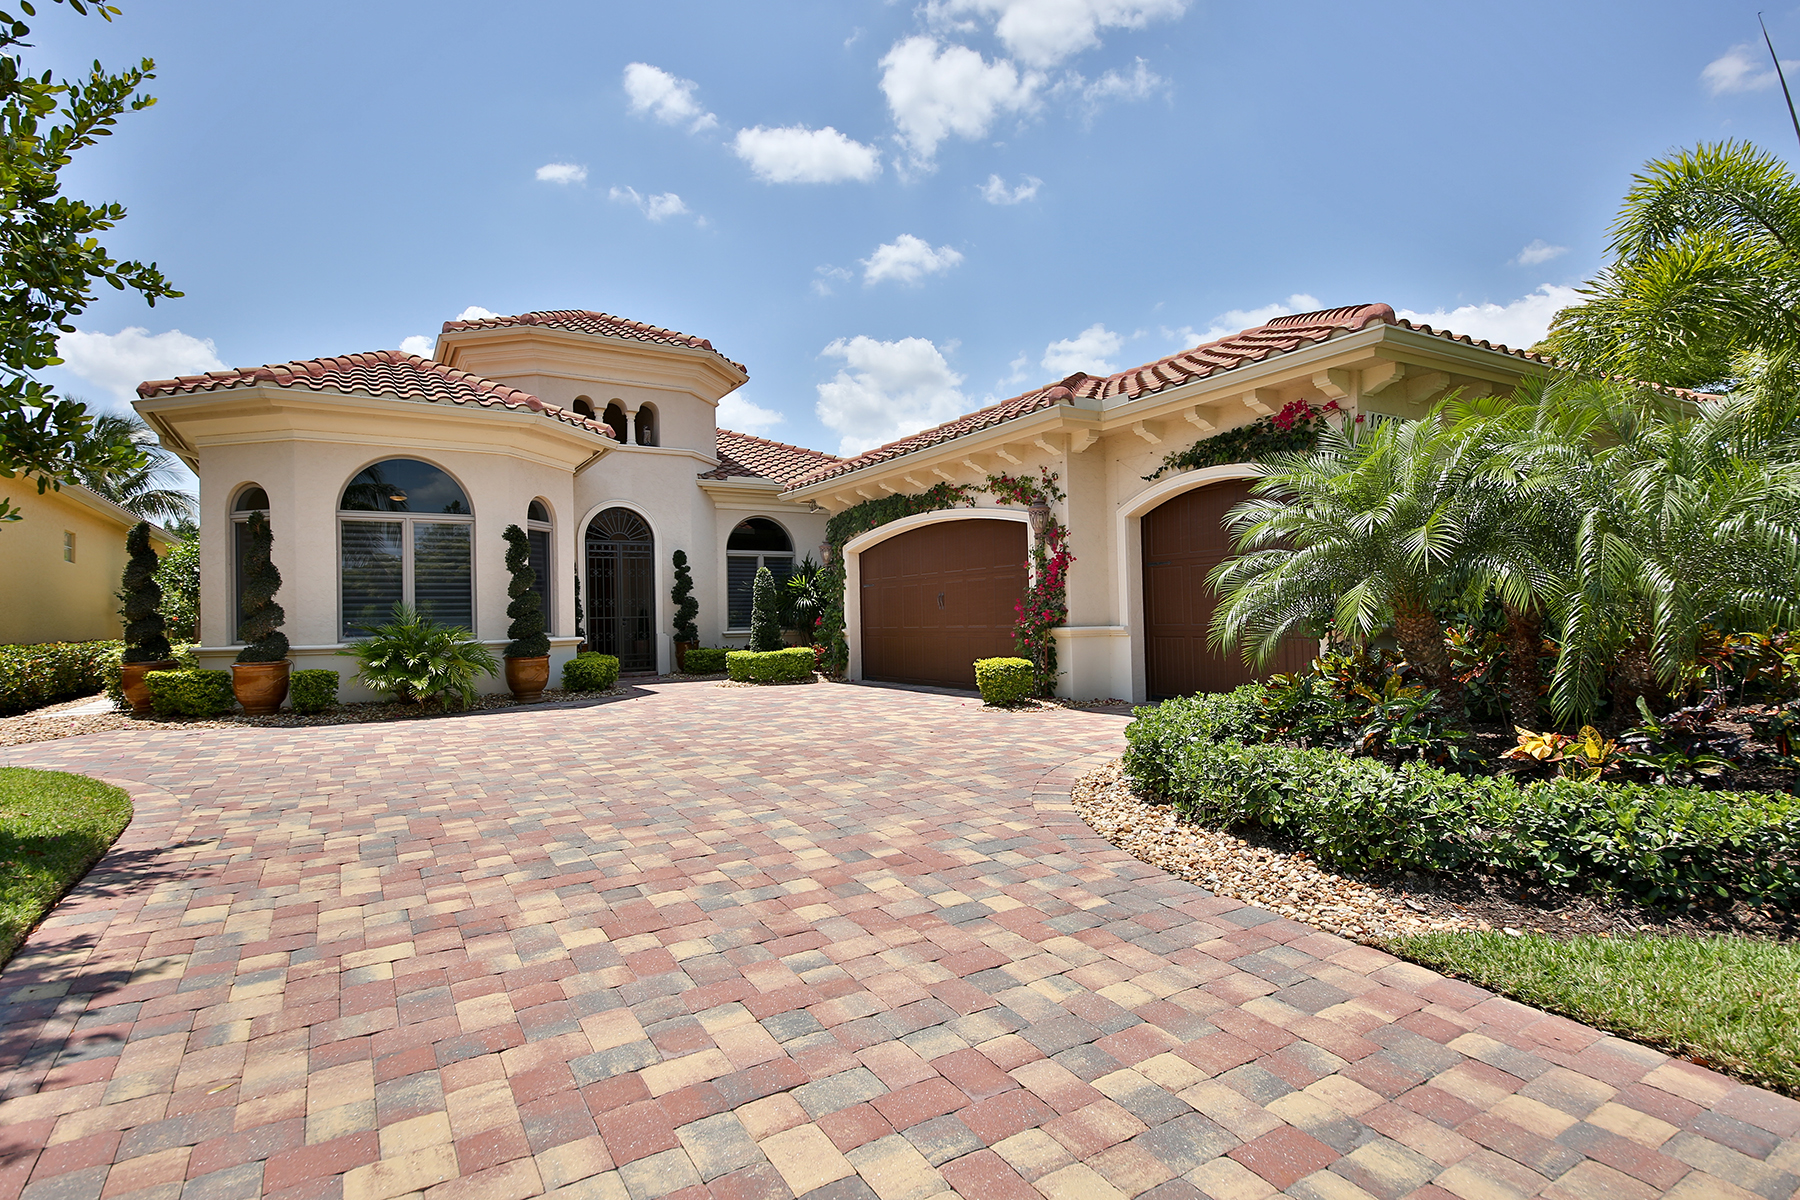 Single Family Home for Sale at CAPRINI at MIROMAR LAKES BEACH AND GOLF CLUB 18291 Via Caprini Dr Miromar Lakes, Florida, 33913 United States